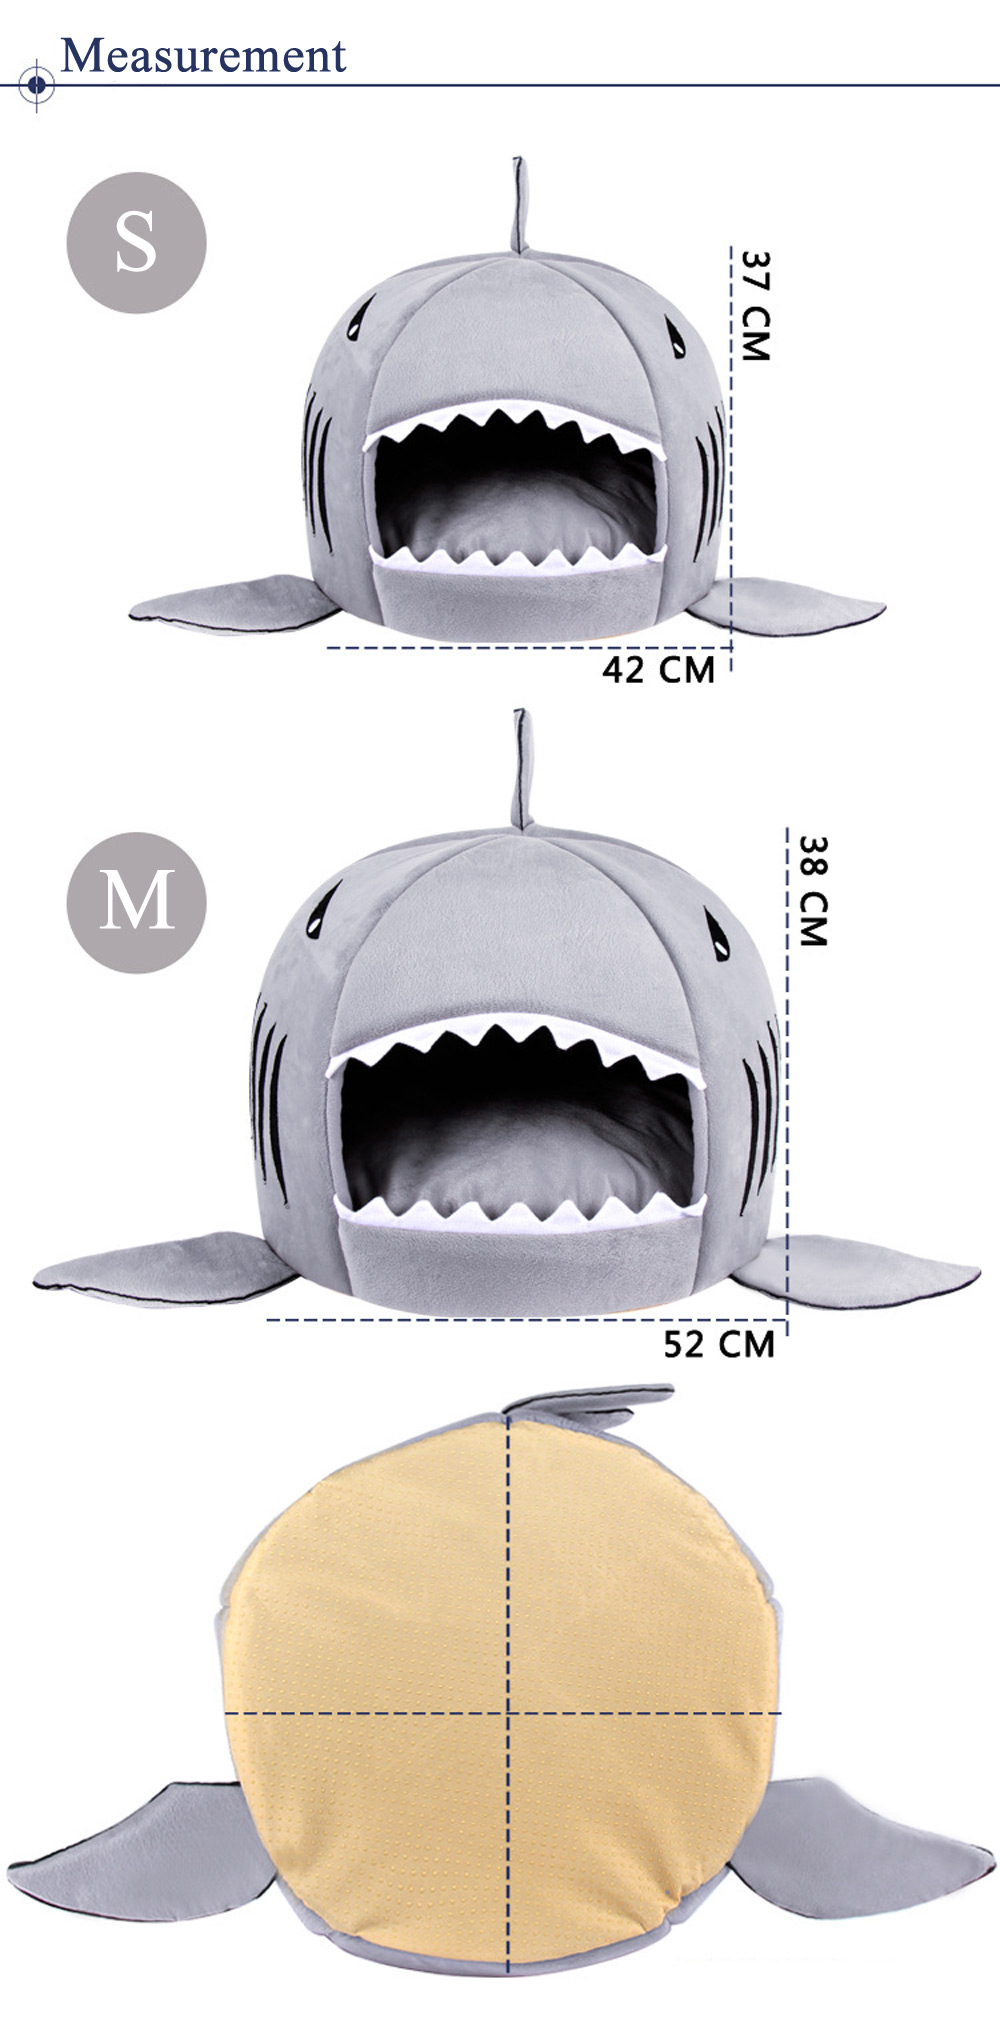 Lovely Soft Shark Mouth Shape Doghouse Pet Kennel with Cushion- Gray M